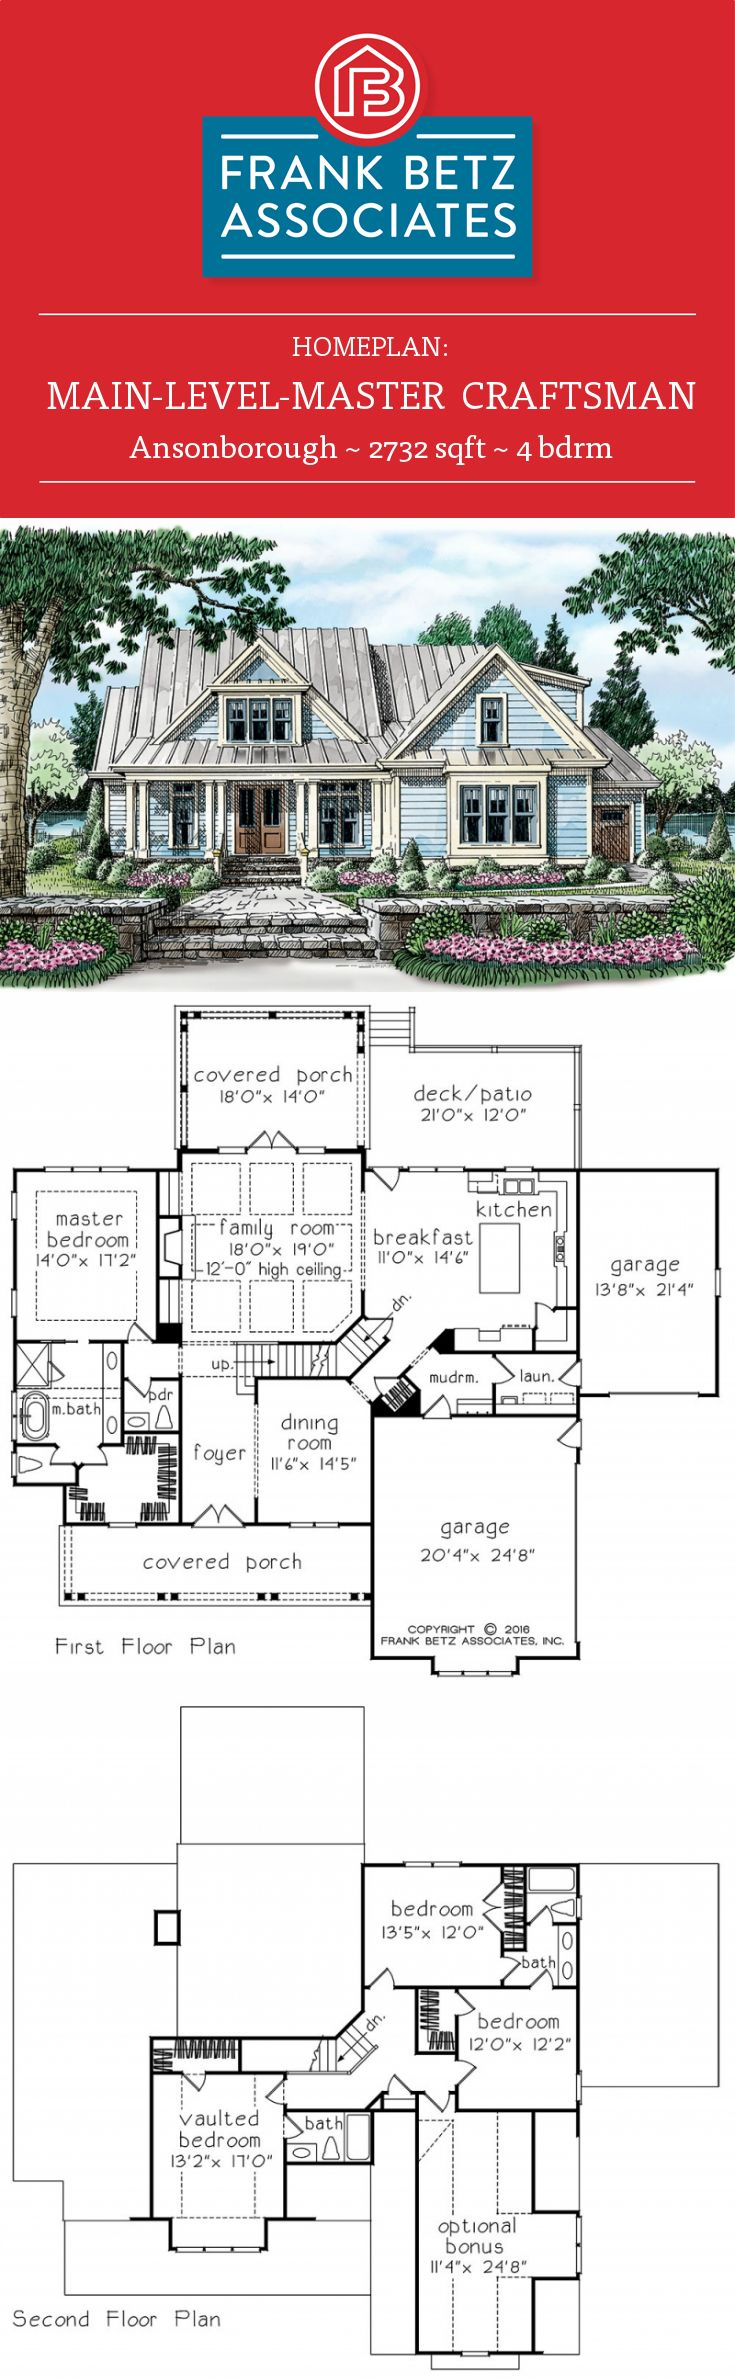 Ansonborough: 2732 sqft, 4 bdrm, main-level-master craftsman, Southern Living house plan design by Frank Betz Associates inc.